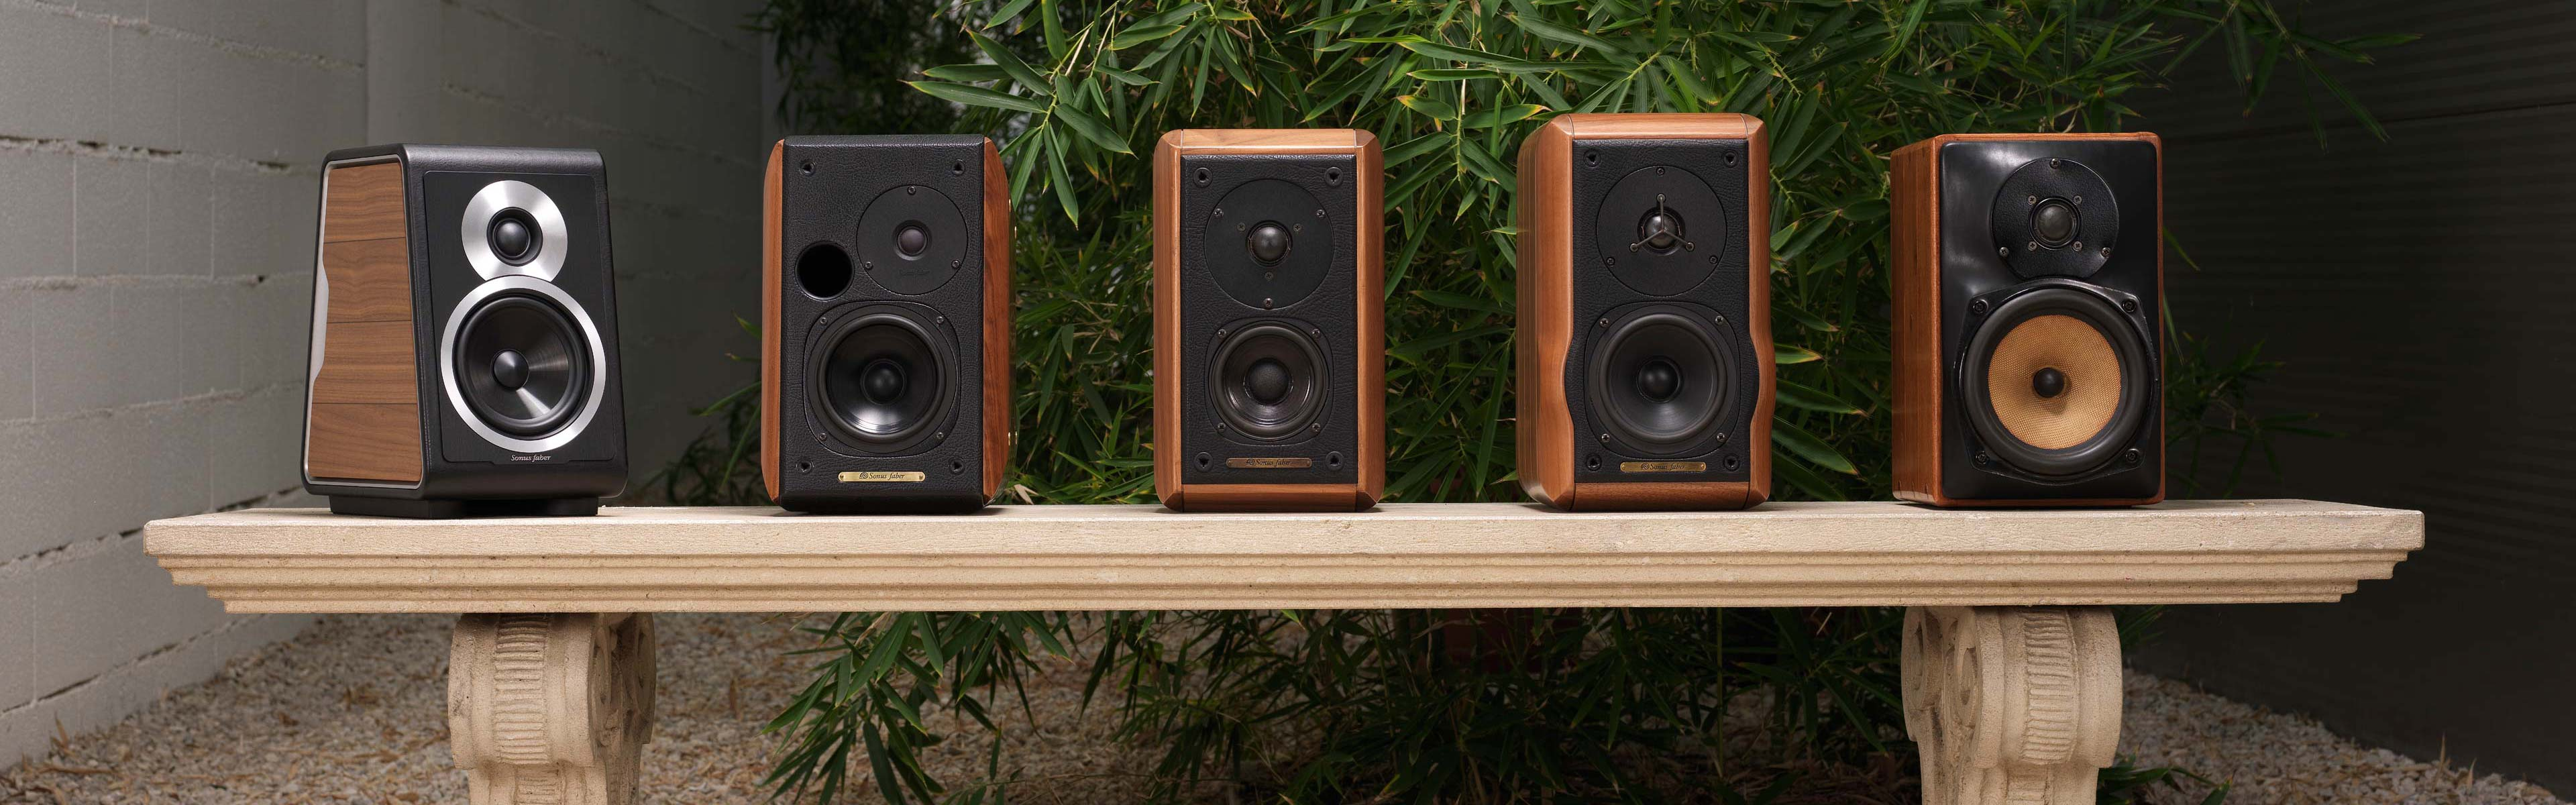 Our History of Italian Luxury Speakers Manufacturers | Souns